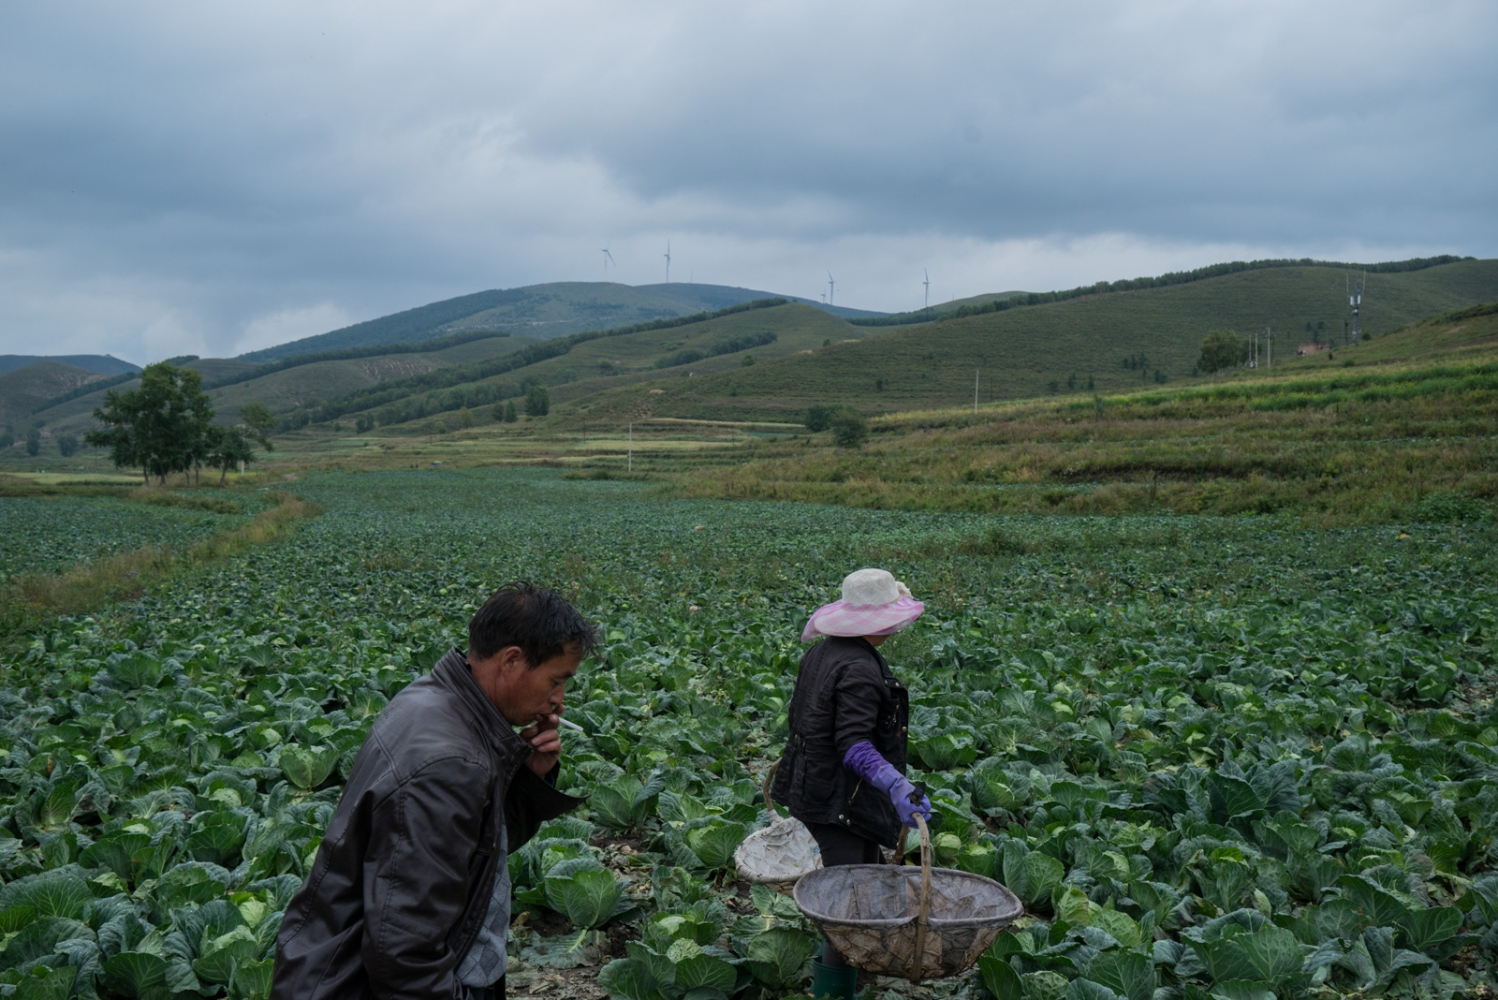 Chen Lanzhen, a villager of Taizicheng, goes into the field to harvest cabbage with the help of her brother Chen Hu on Sepetember 8, 2015. As most of the families in Taizicheng, the Chen family's major income comes from growing and selling cabbage.